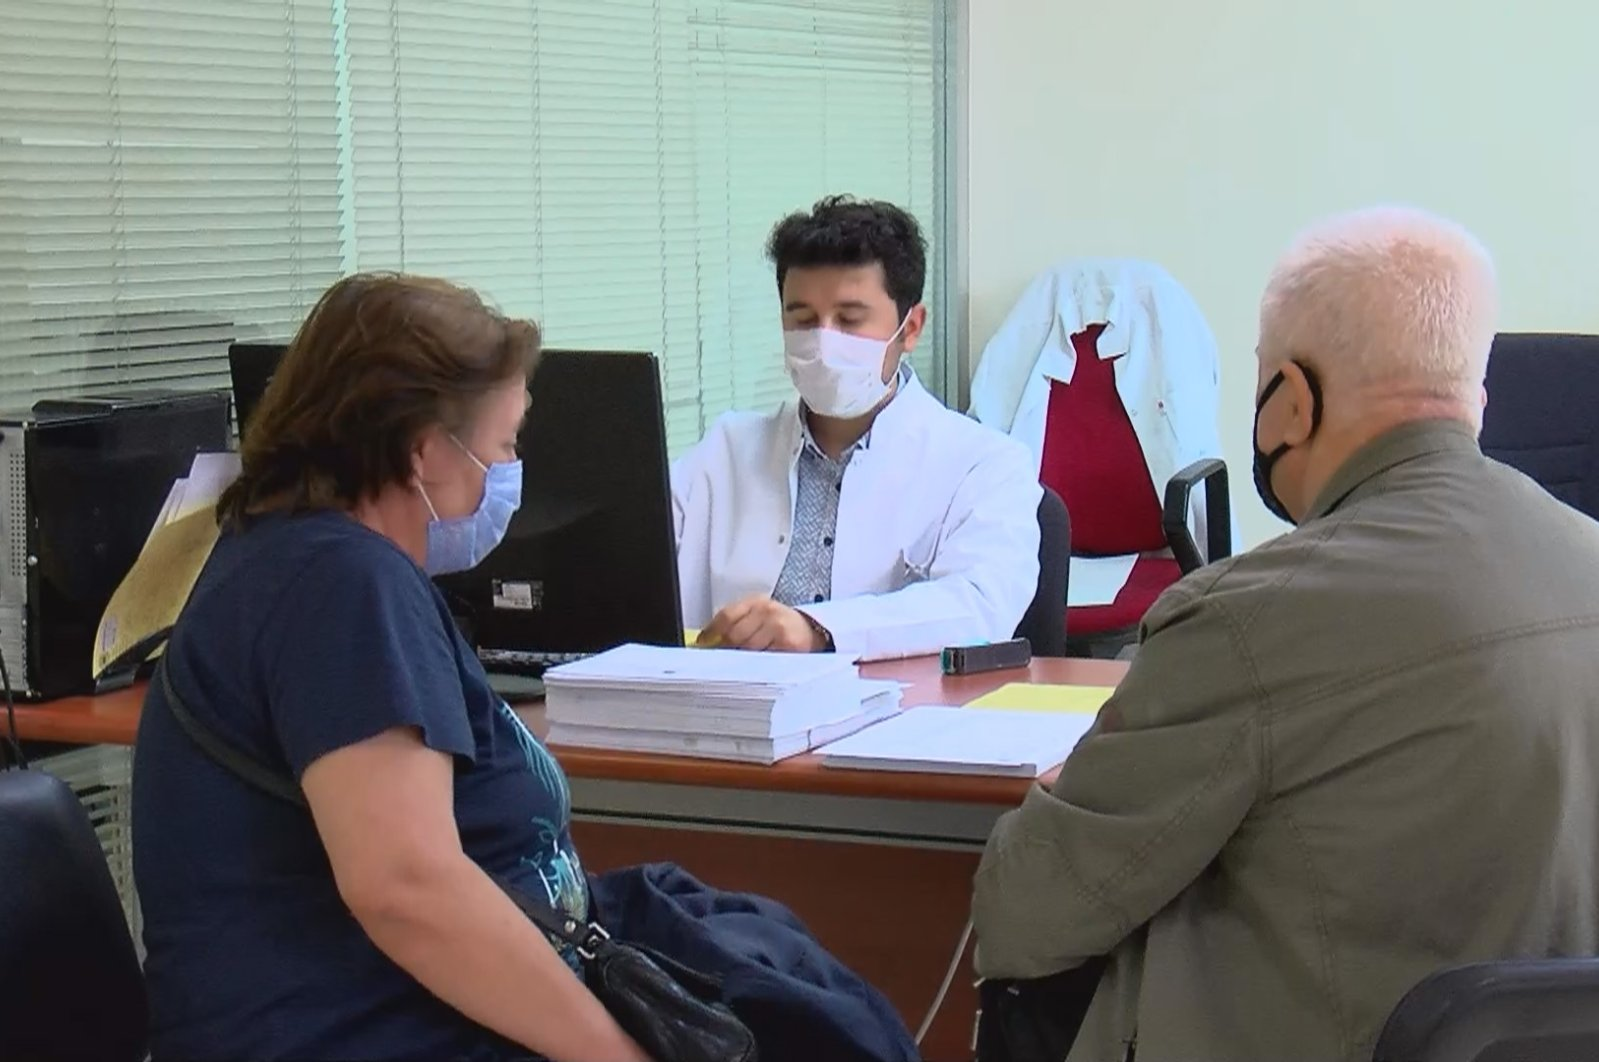 Recovered patients speak to a doctor at a COVID-19 monitoring center, in Istanbul, Turkey, June 1, 2021. (DHA PHOTO)